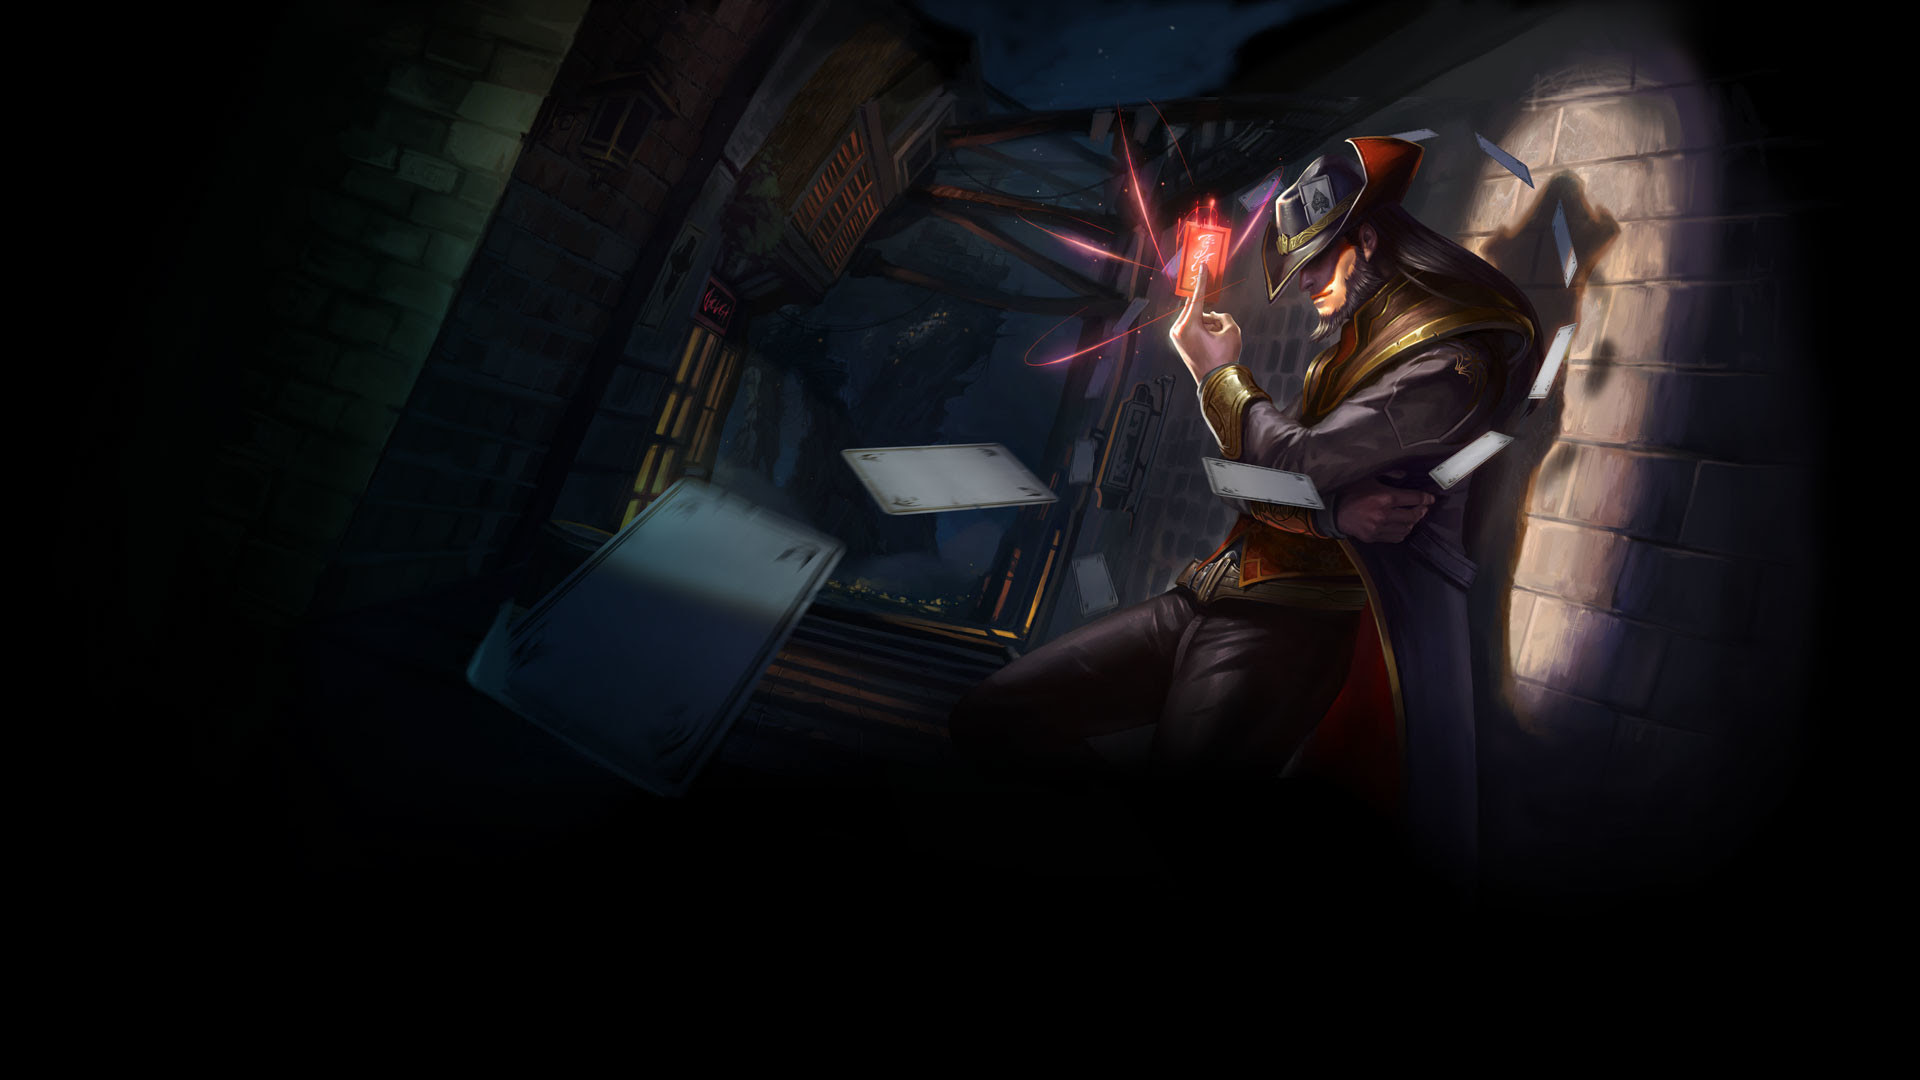 Twisted Fate Background 66 Images